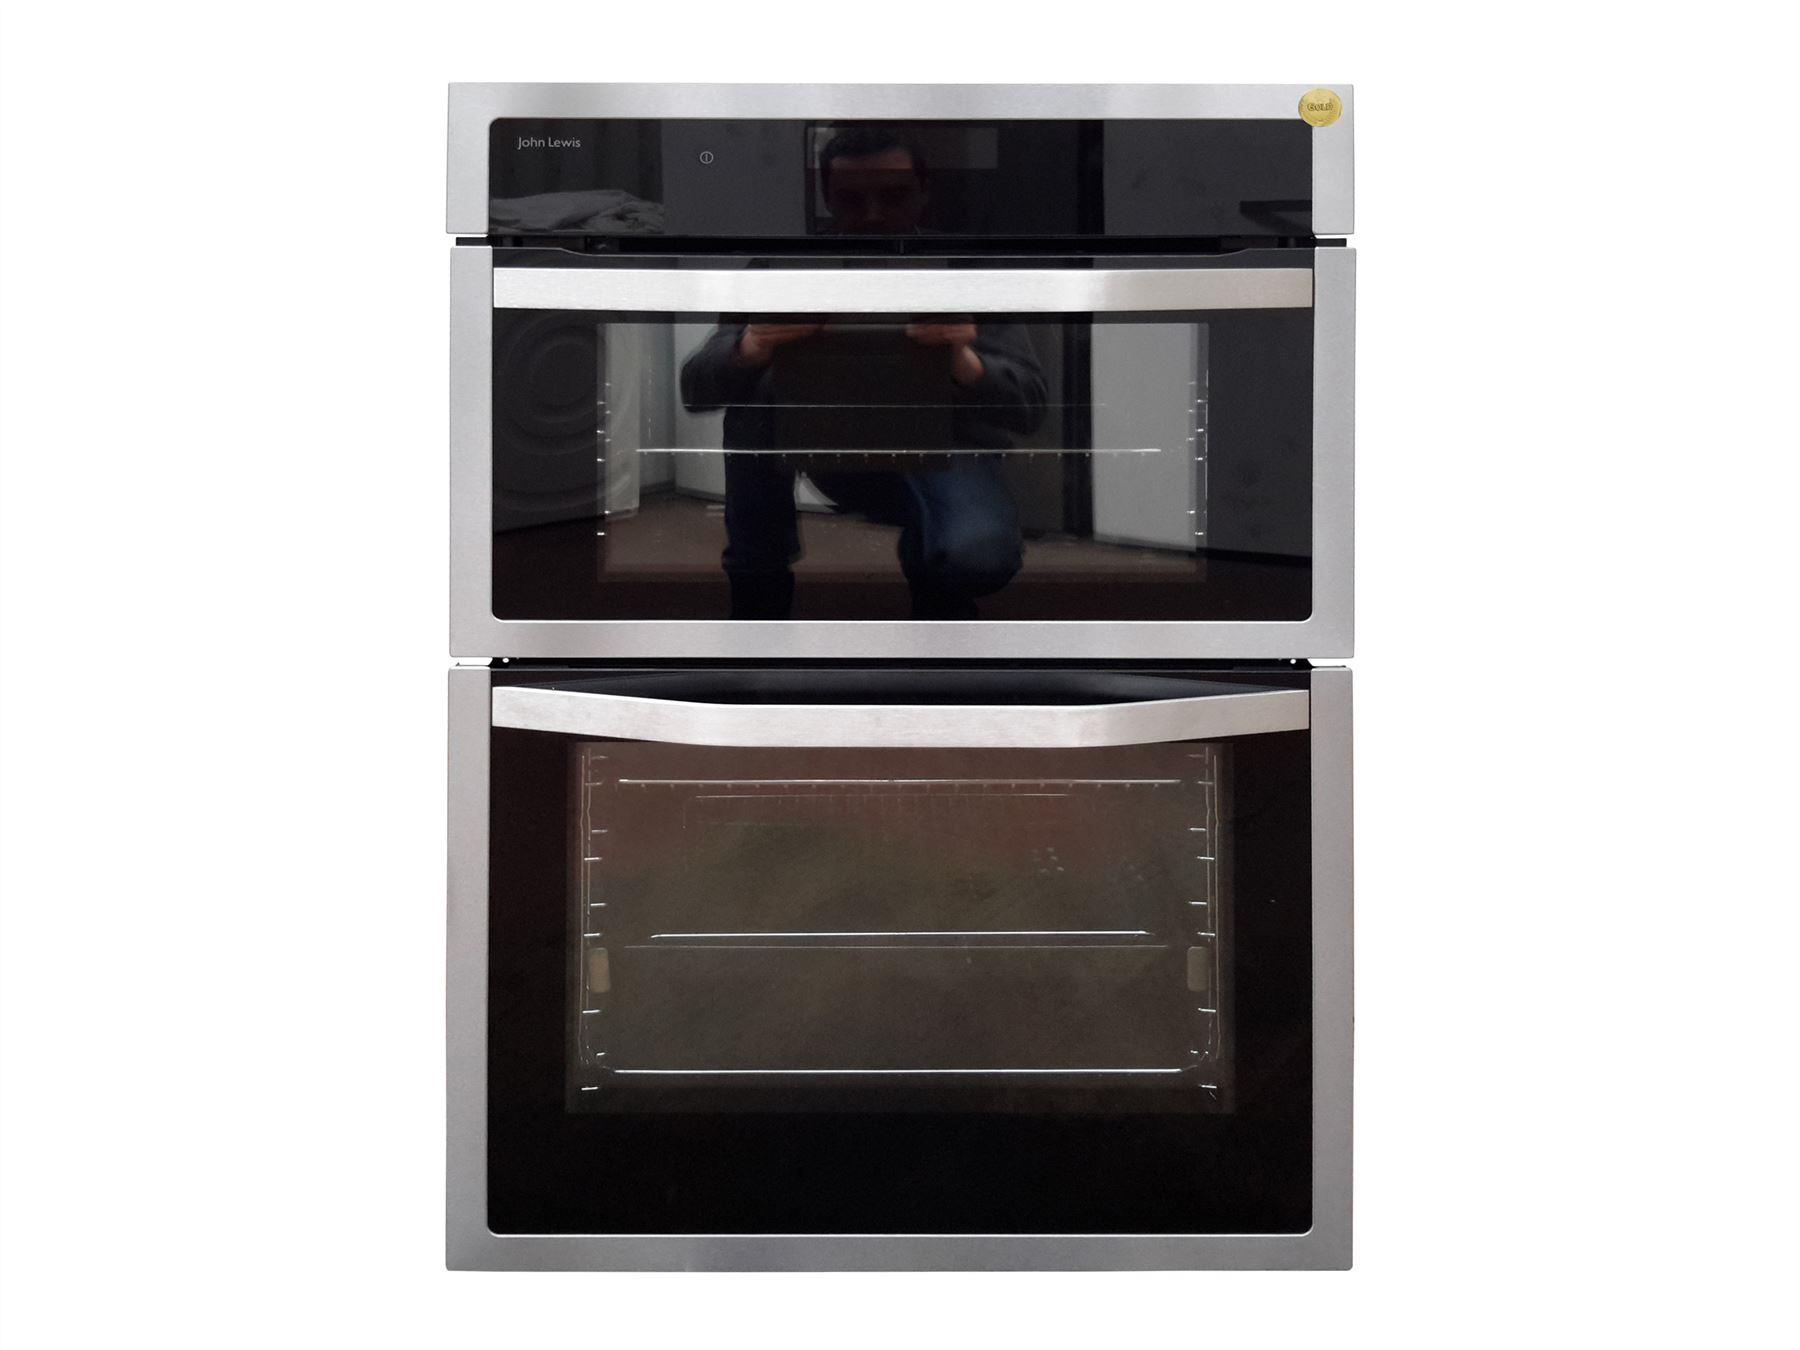 john lewis jlbido915x double electric oven stainless. Black Bedroom Furniture Sets. Home Design Ideas